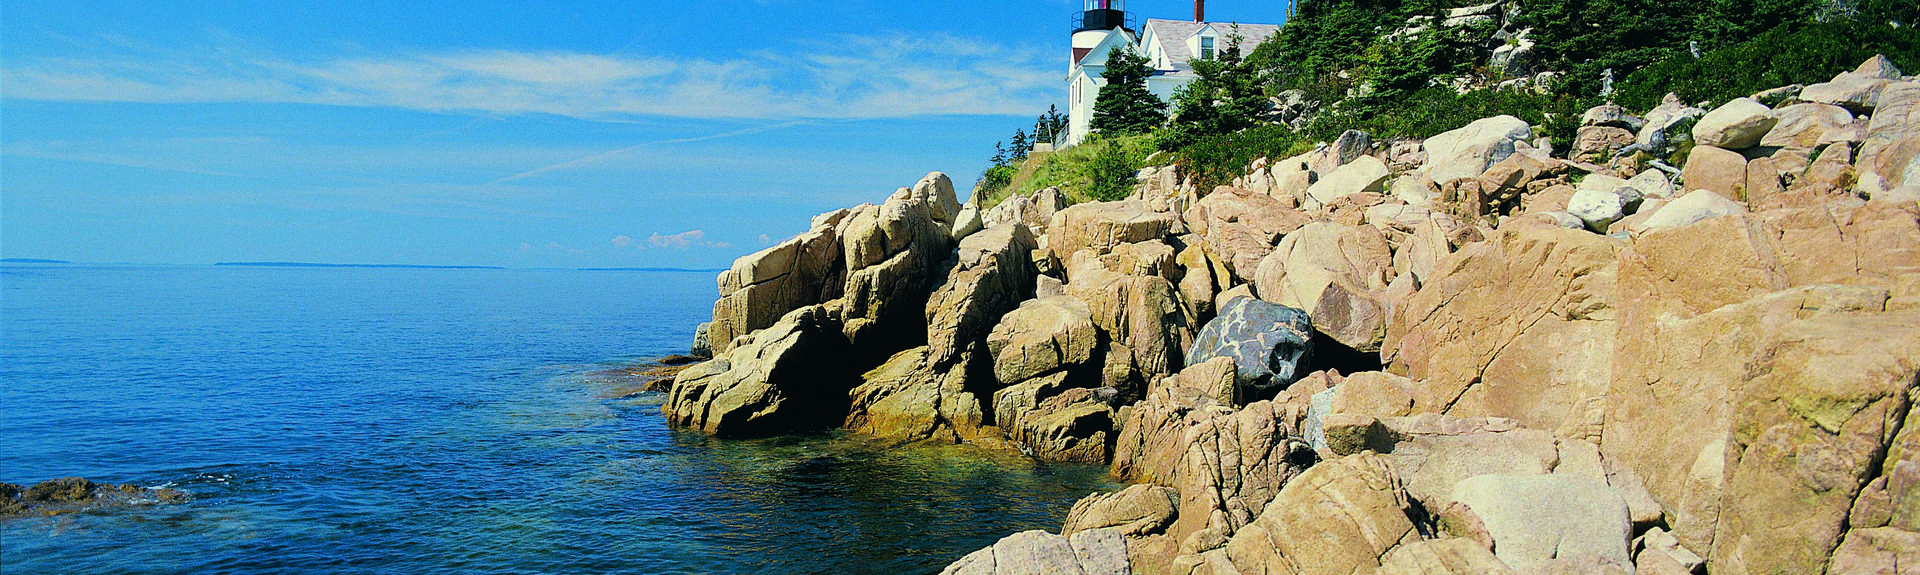 Bass Harbor, Tremont, ME, USA